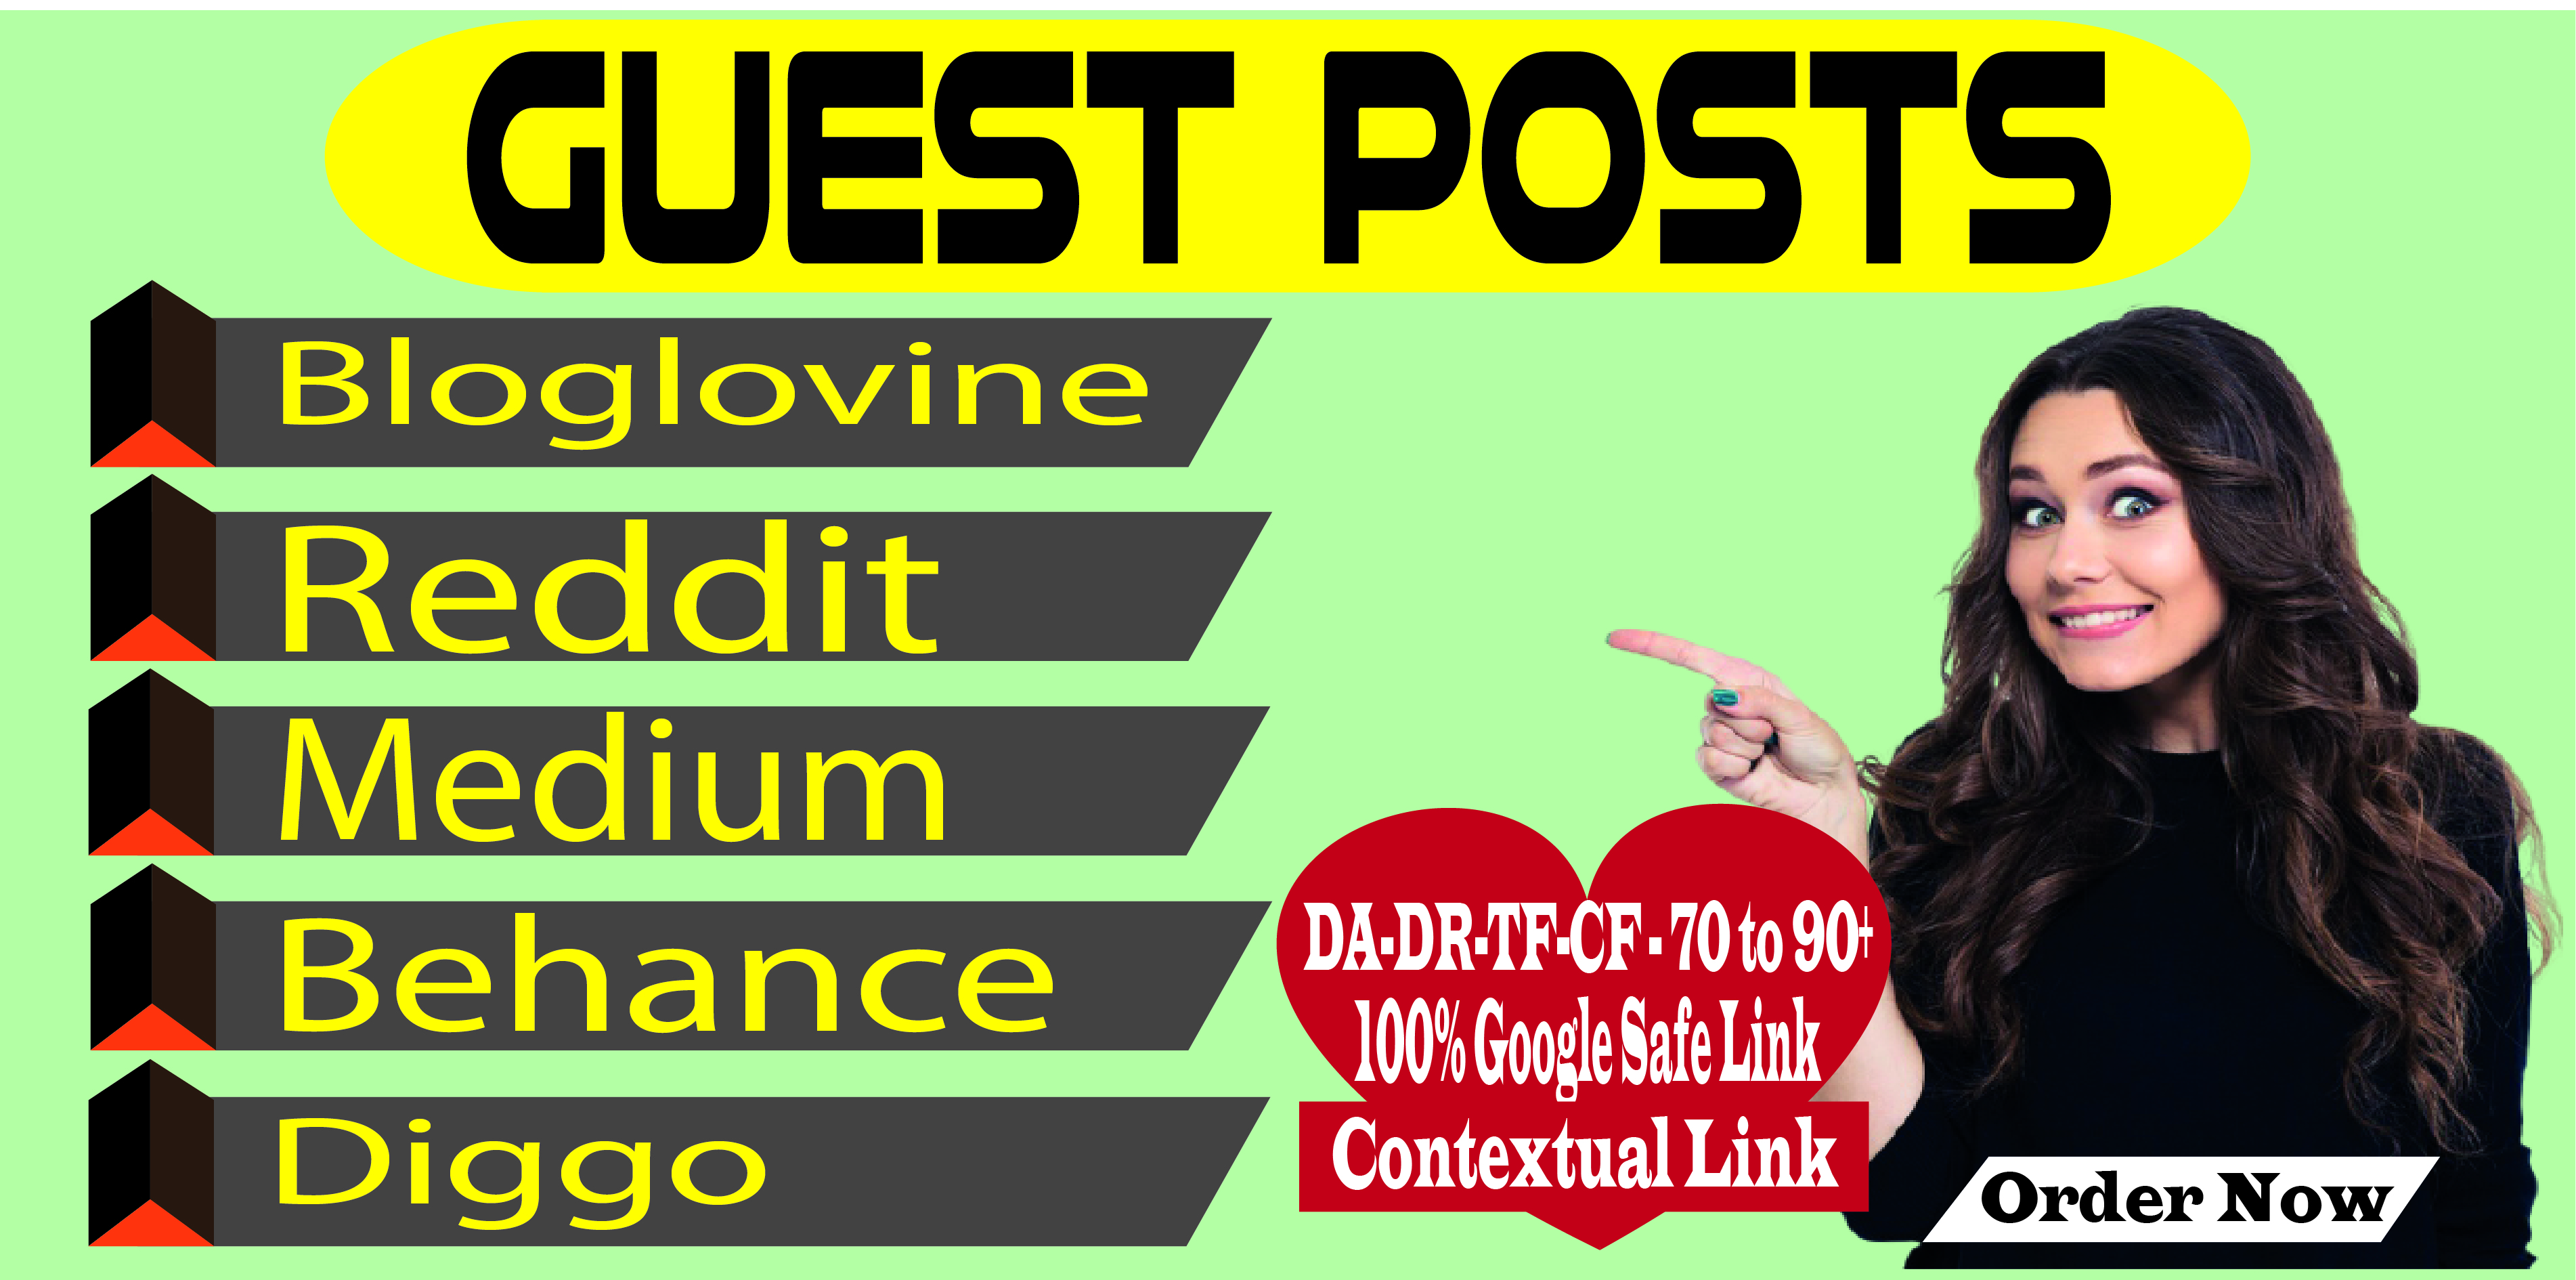 Publish Guest Posts on Multiple High Quality Sites DA 70 to 90+